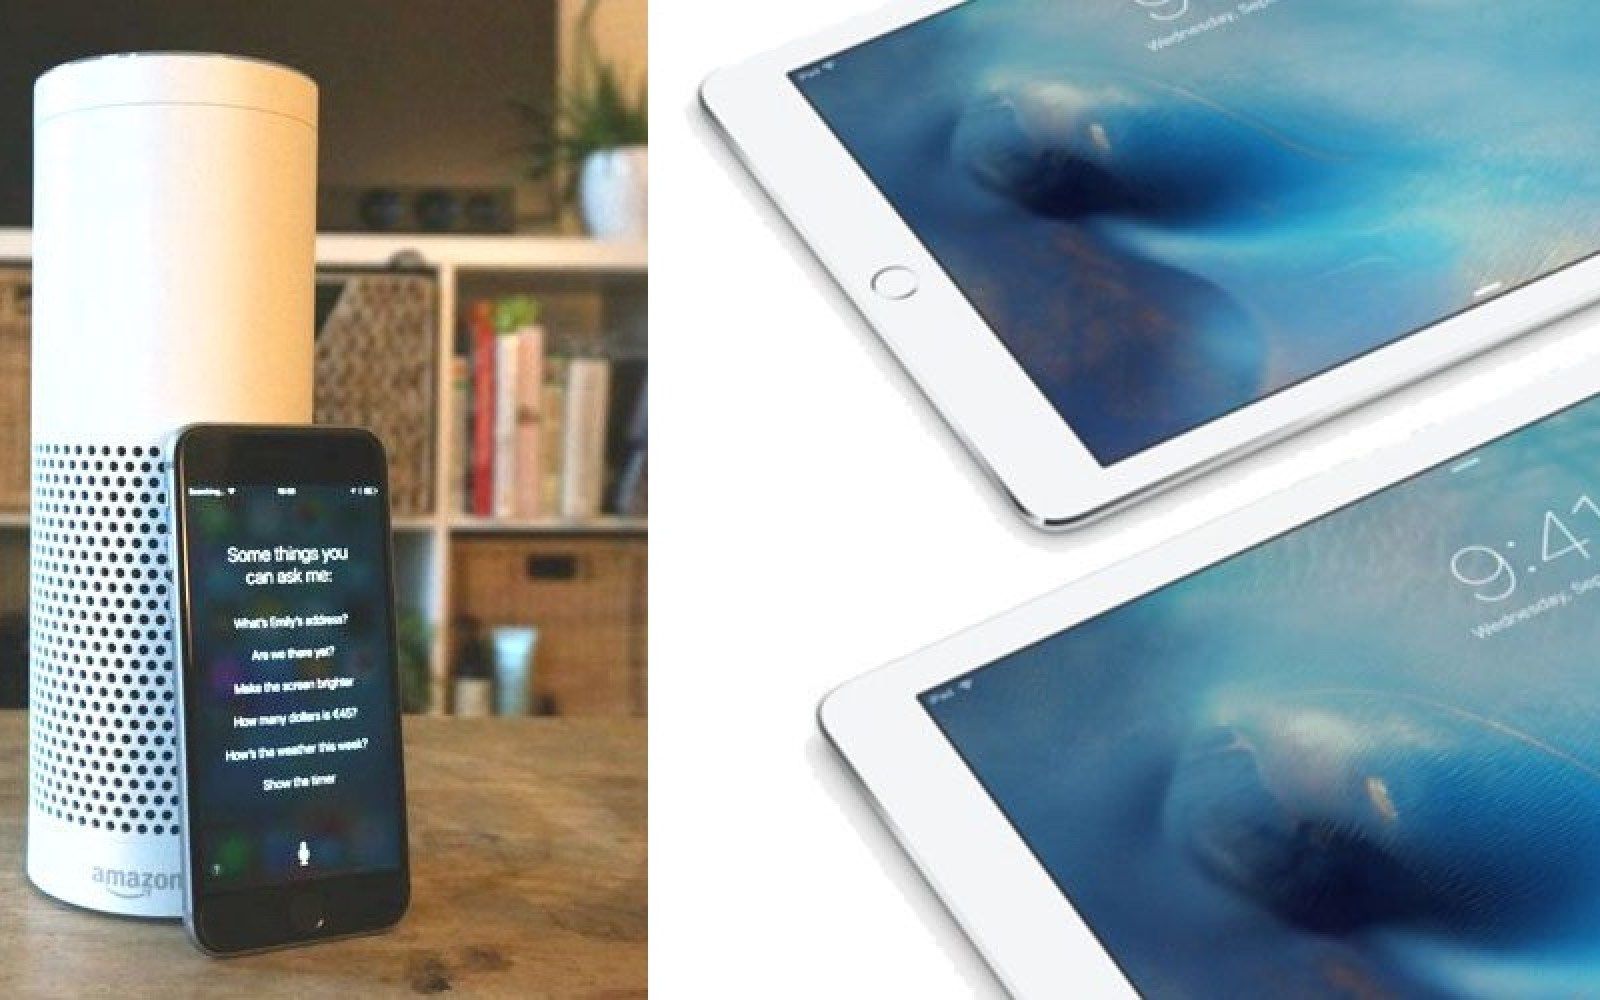 KGI: Apple likely to launch 10.5-inch iPad Pro and Siri Speaker at WWDC alongside new software